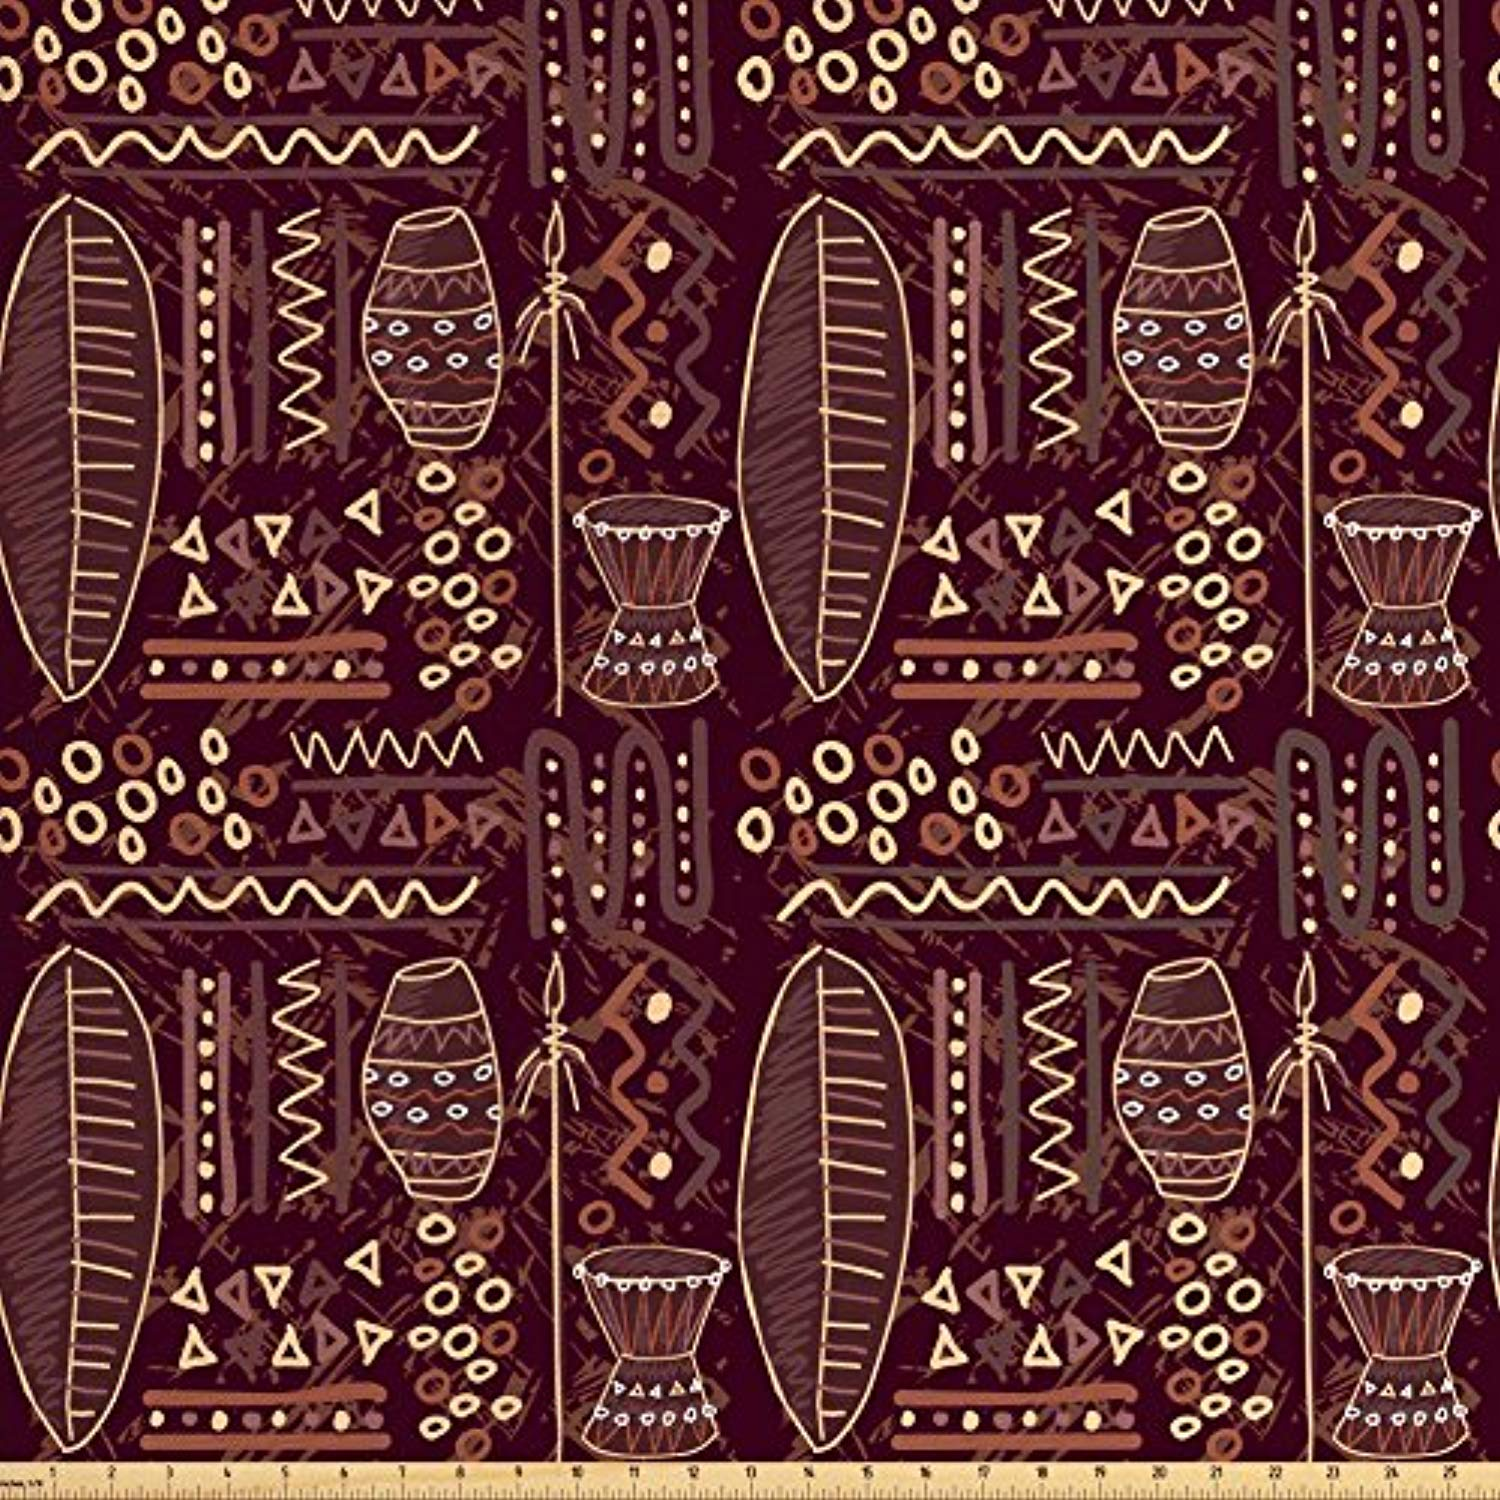 Ambesonne Brown Fabric by the Yard, African Ethnic Tribal Image with Geometrical Shapes Artwork Print, Decorative Fabric for Upholstery and Home Accents, Dark Brown Cocoa and Cream